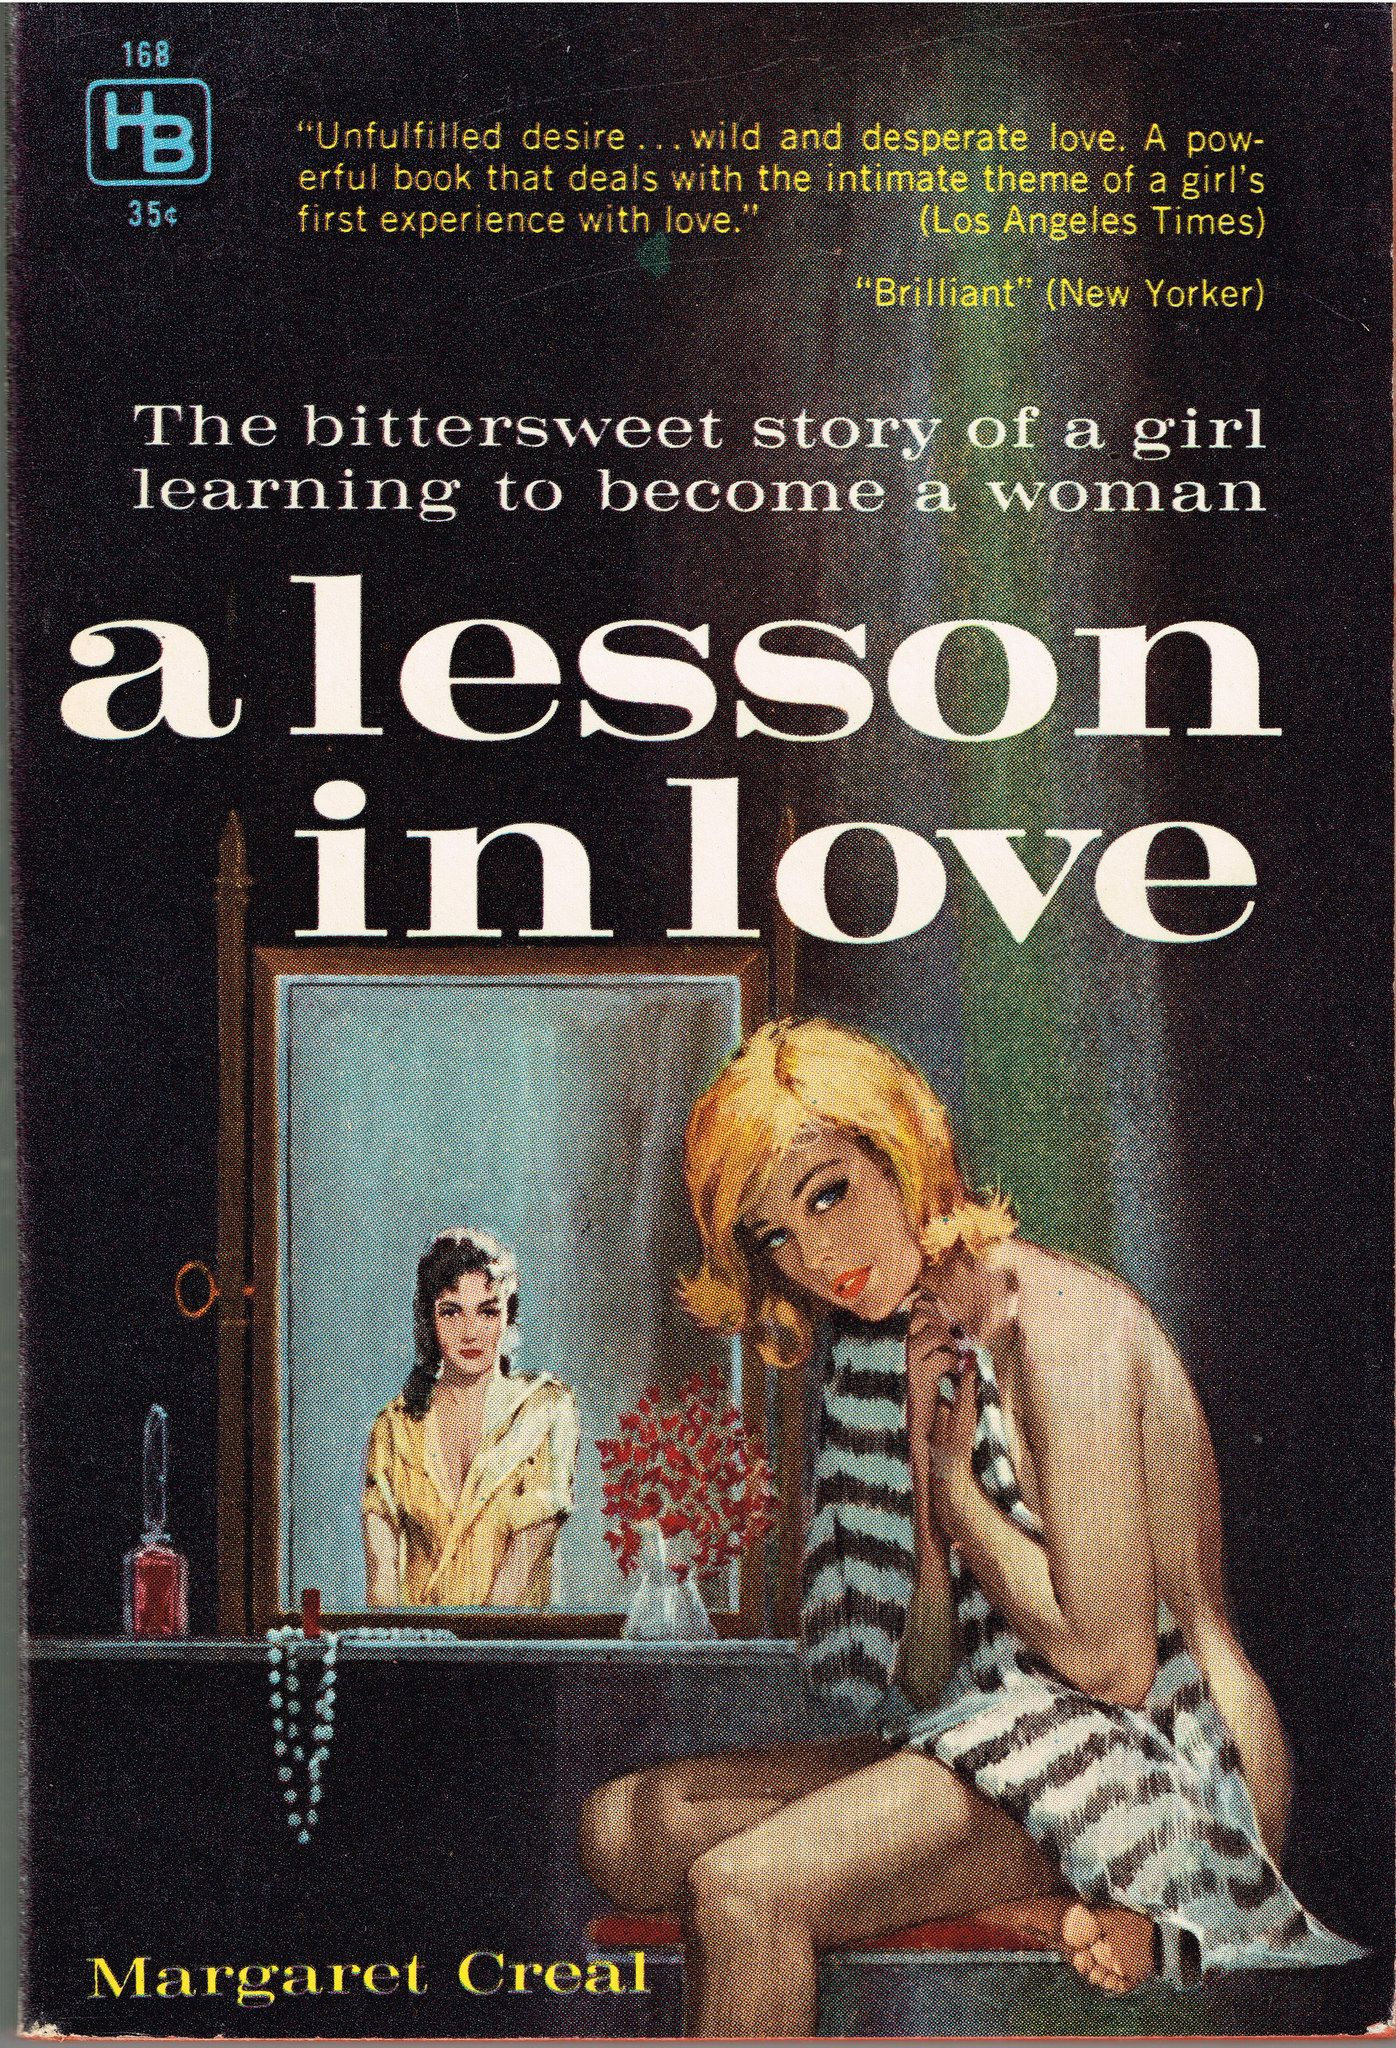 https://flic.kr/p/BcF1oV | a lesson in love | Hillman Book 168 (1960)  Margaret Creal Cover artist unknown  The story of a young woman`s growing up in a boarding school for girls in Manitoba.